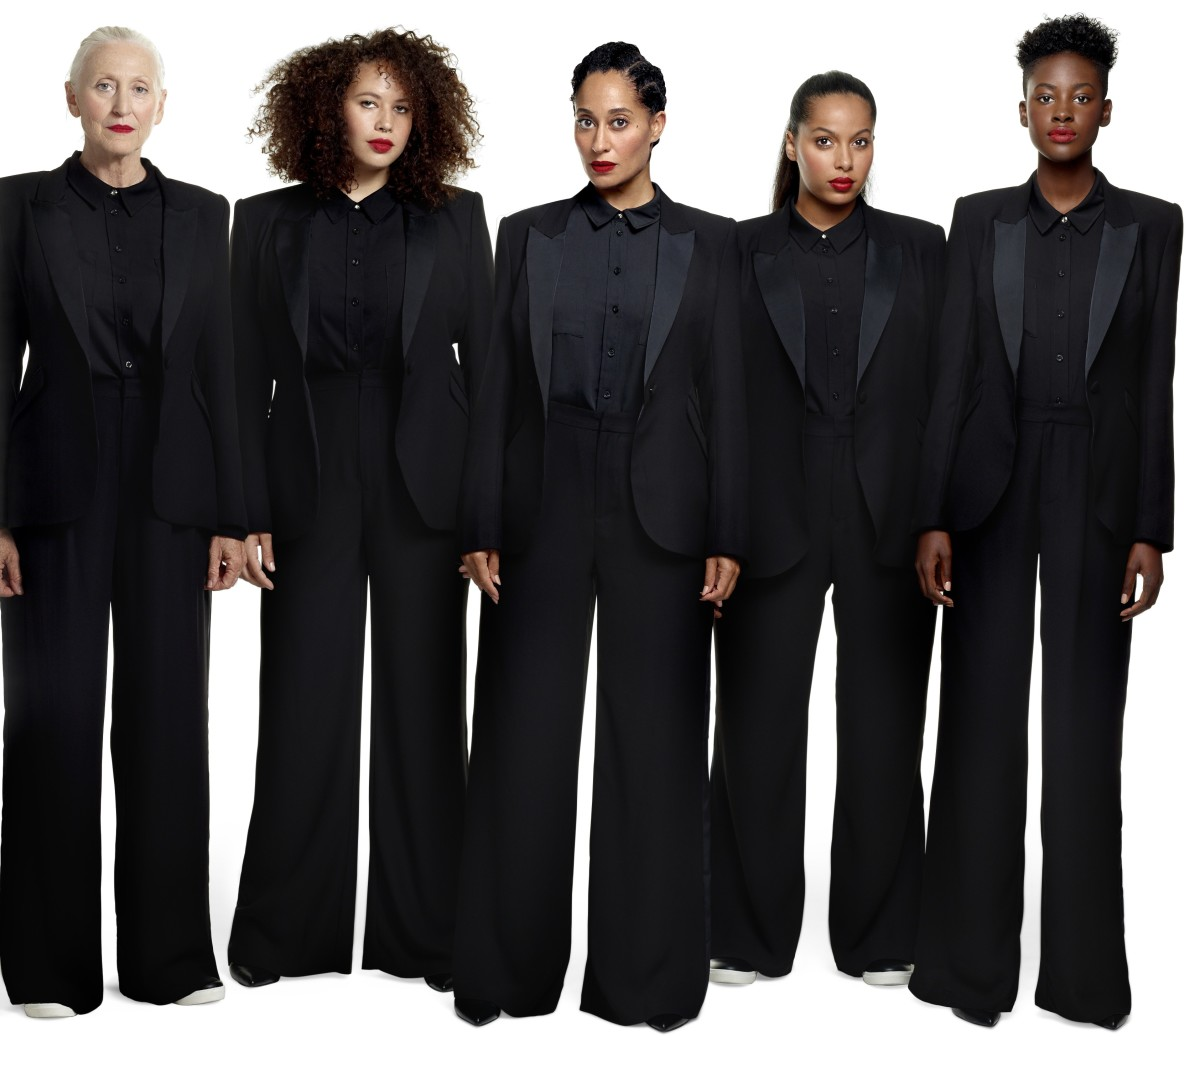 The tuxedos from the Tracee Ellis Ross for JCPenney collection. Photo: Courtesy